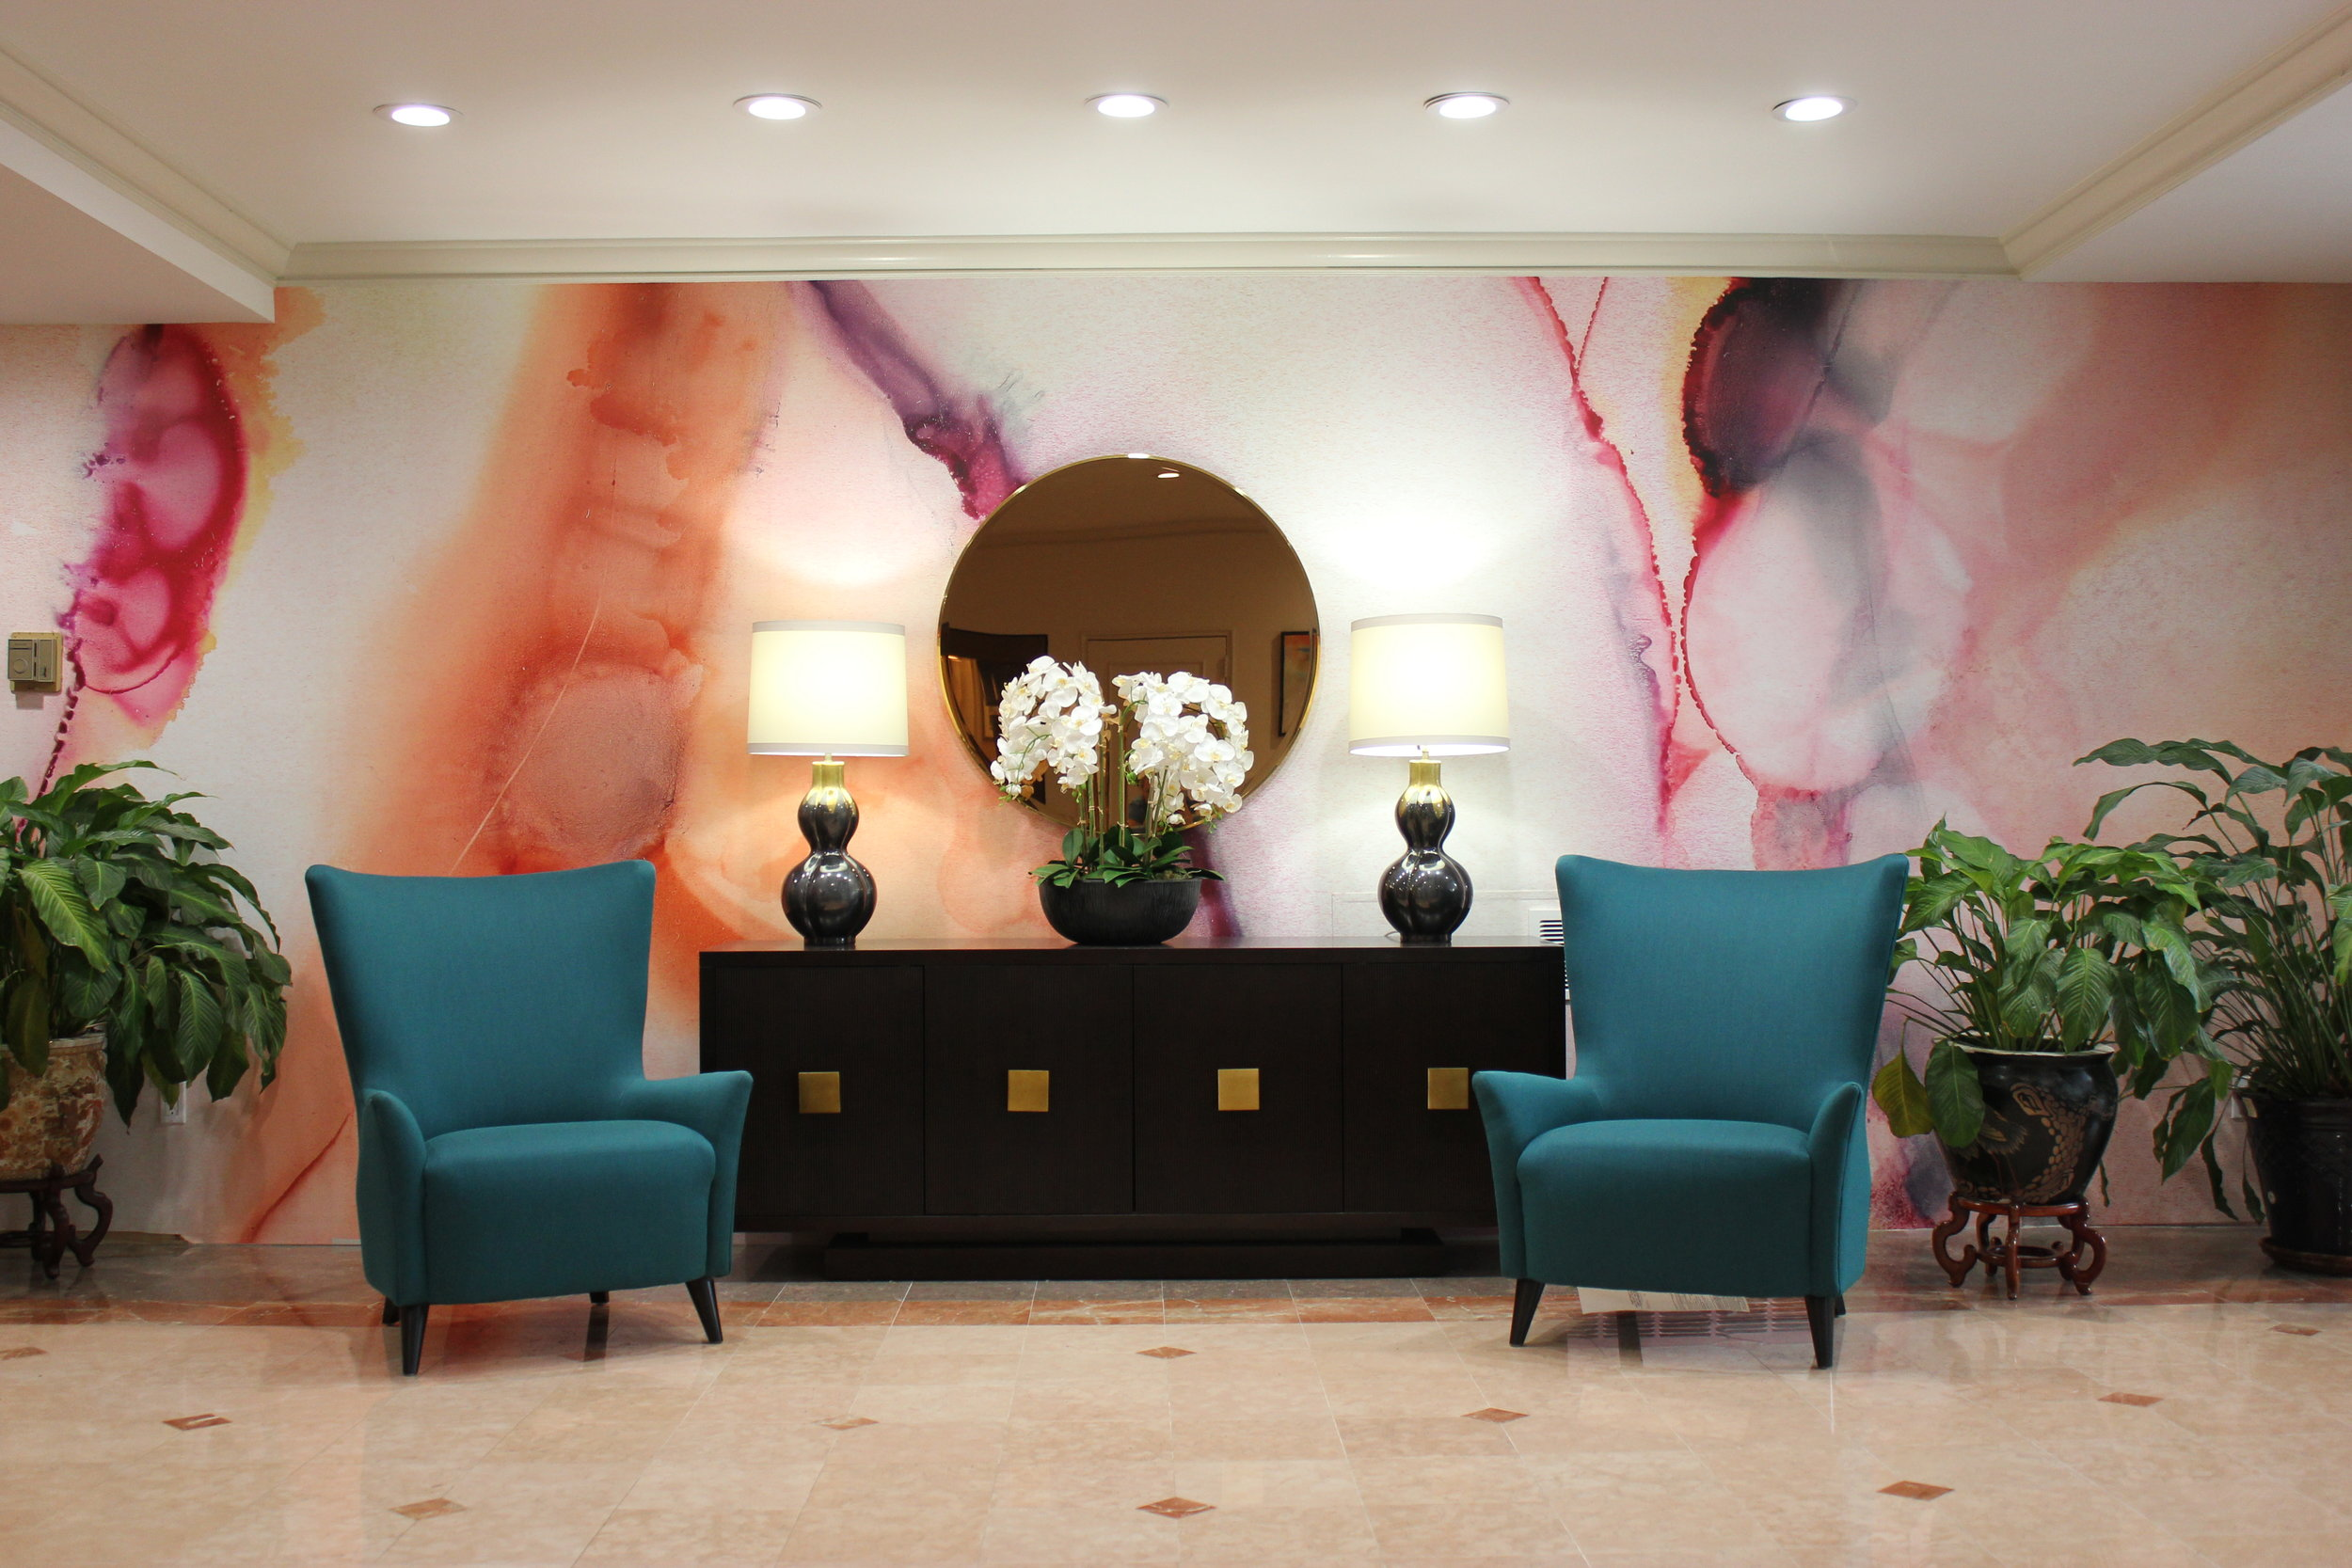 A recent abstract mural installed in a condo lobby in Baltimore for Interior Designer Brian Dermitt. (I had a lot of doubt and trepidation about this one.)